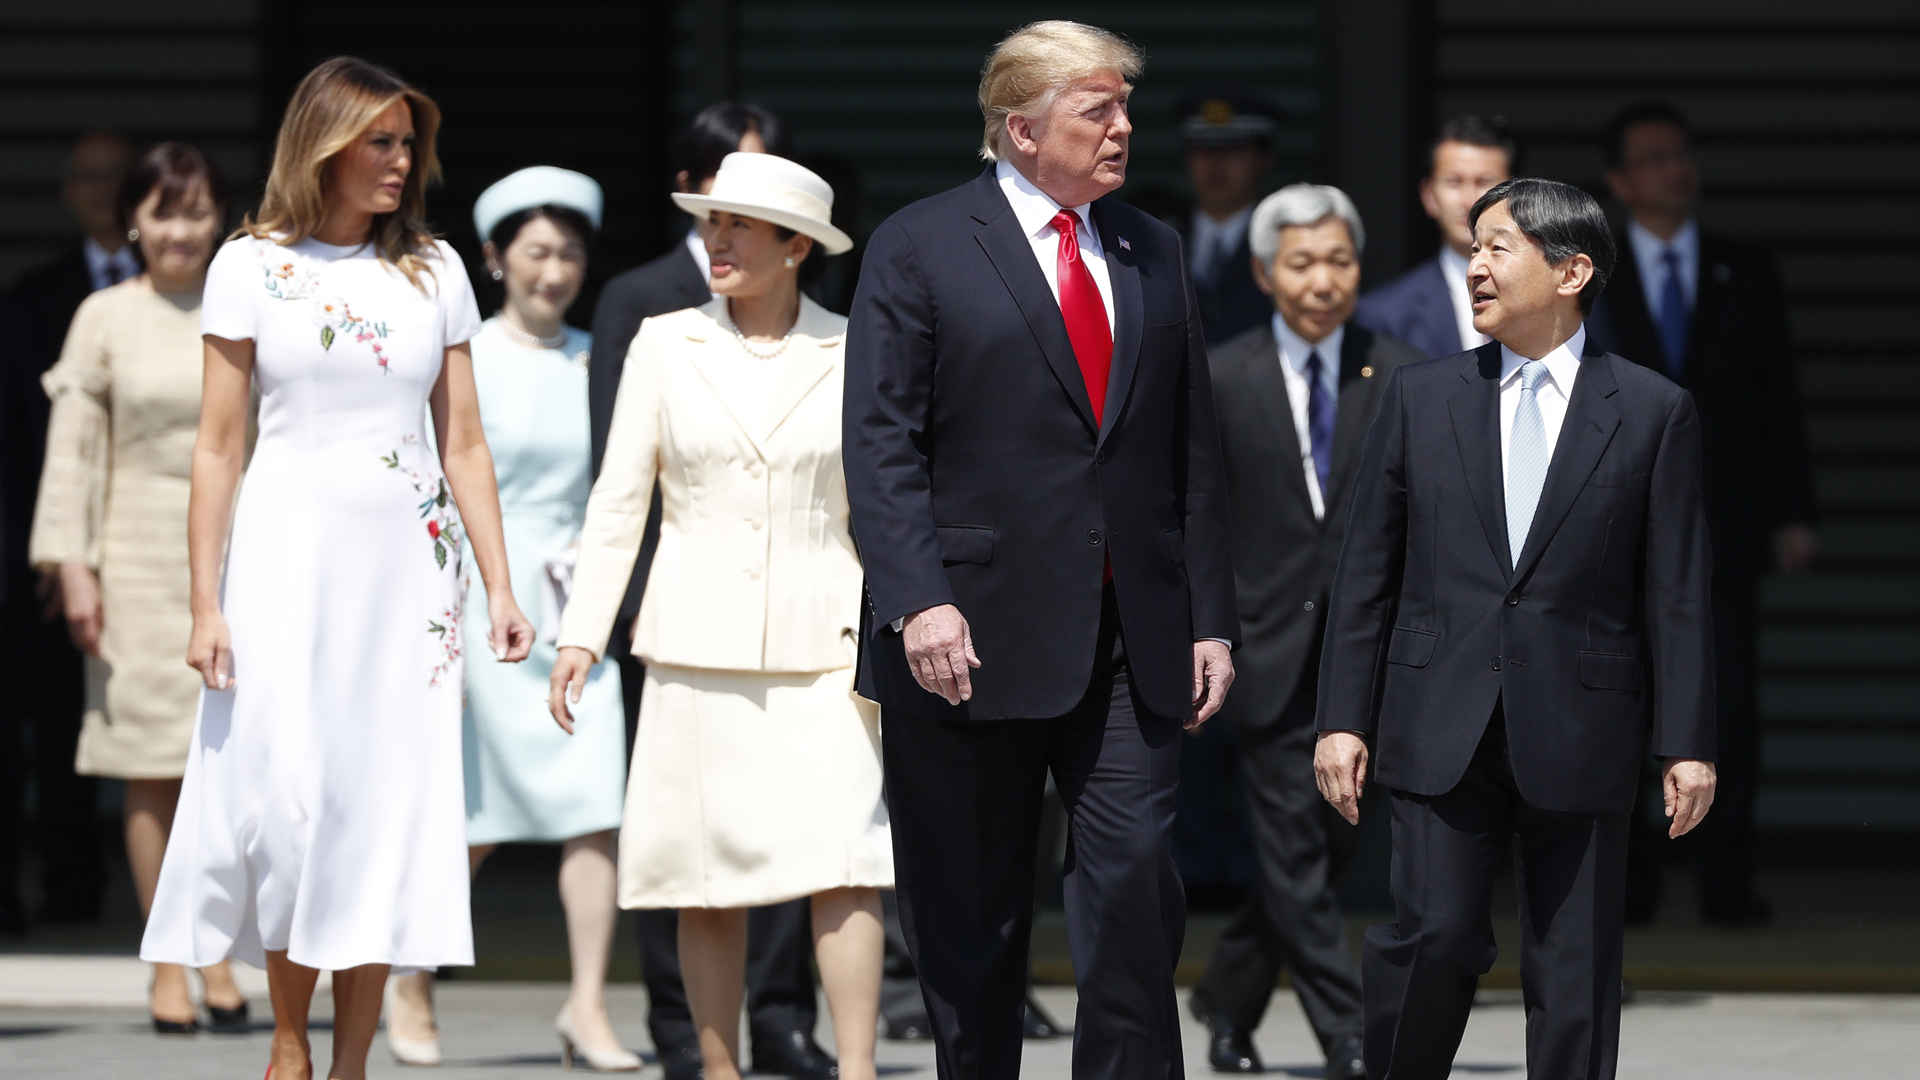 U.S. President Donald Trump and first lady Melania Trump are escorted by Japan's Emperor Naruhito and Empress Masako during an welcome ceremony at the Imperial Palace on May 27, 2019 in Tokyo, Japan. (Credit: Issei Kato/Pool/Getty Images)